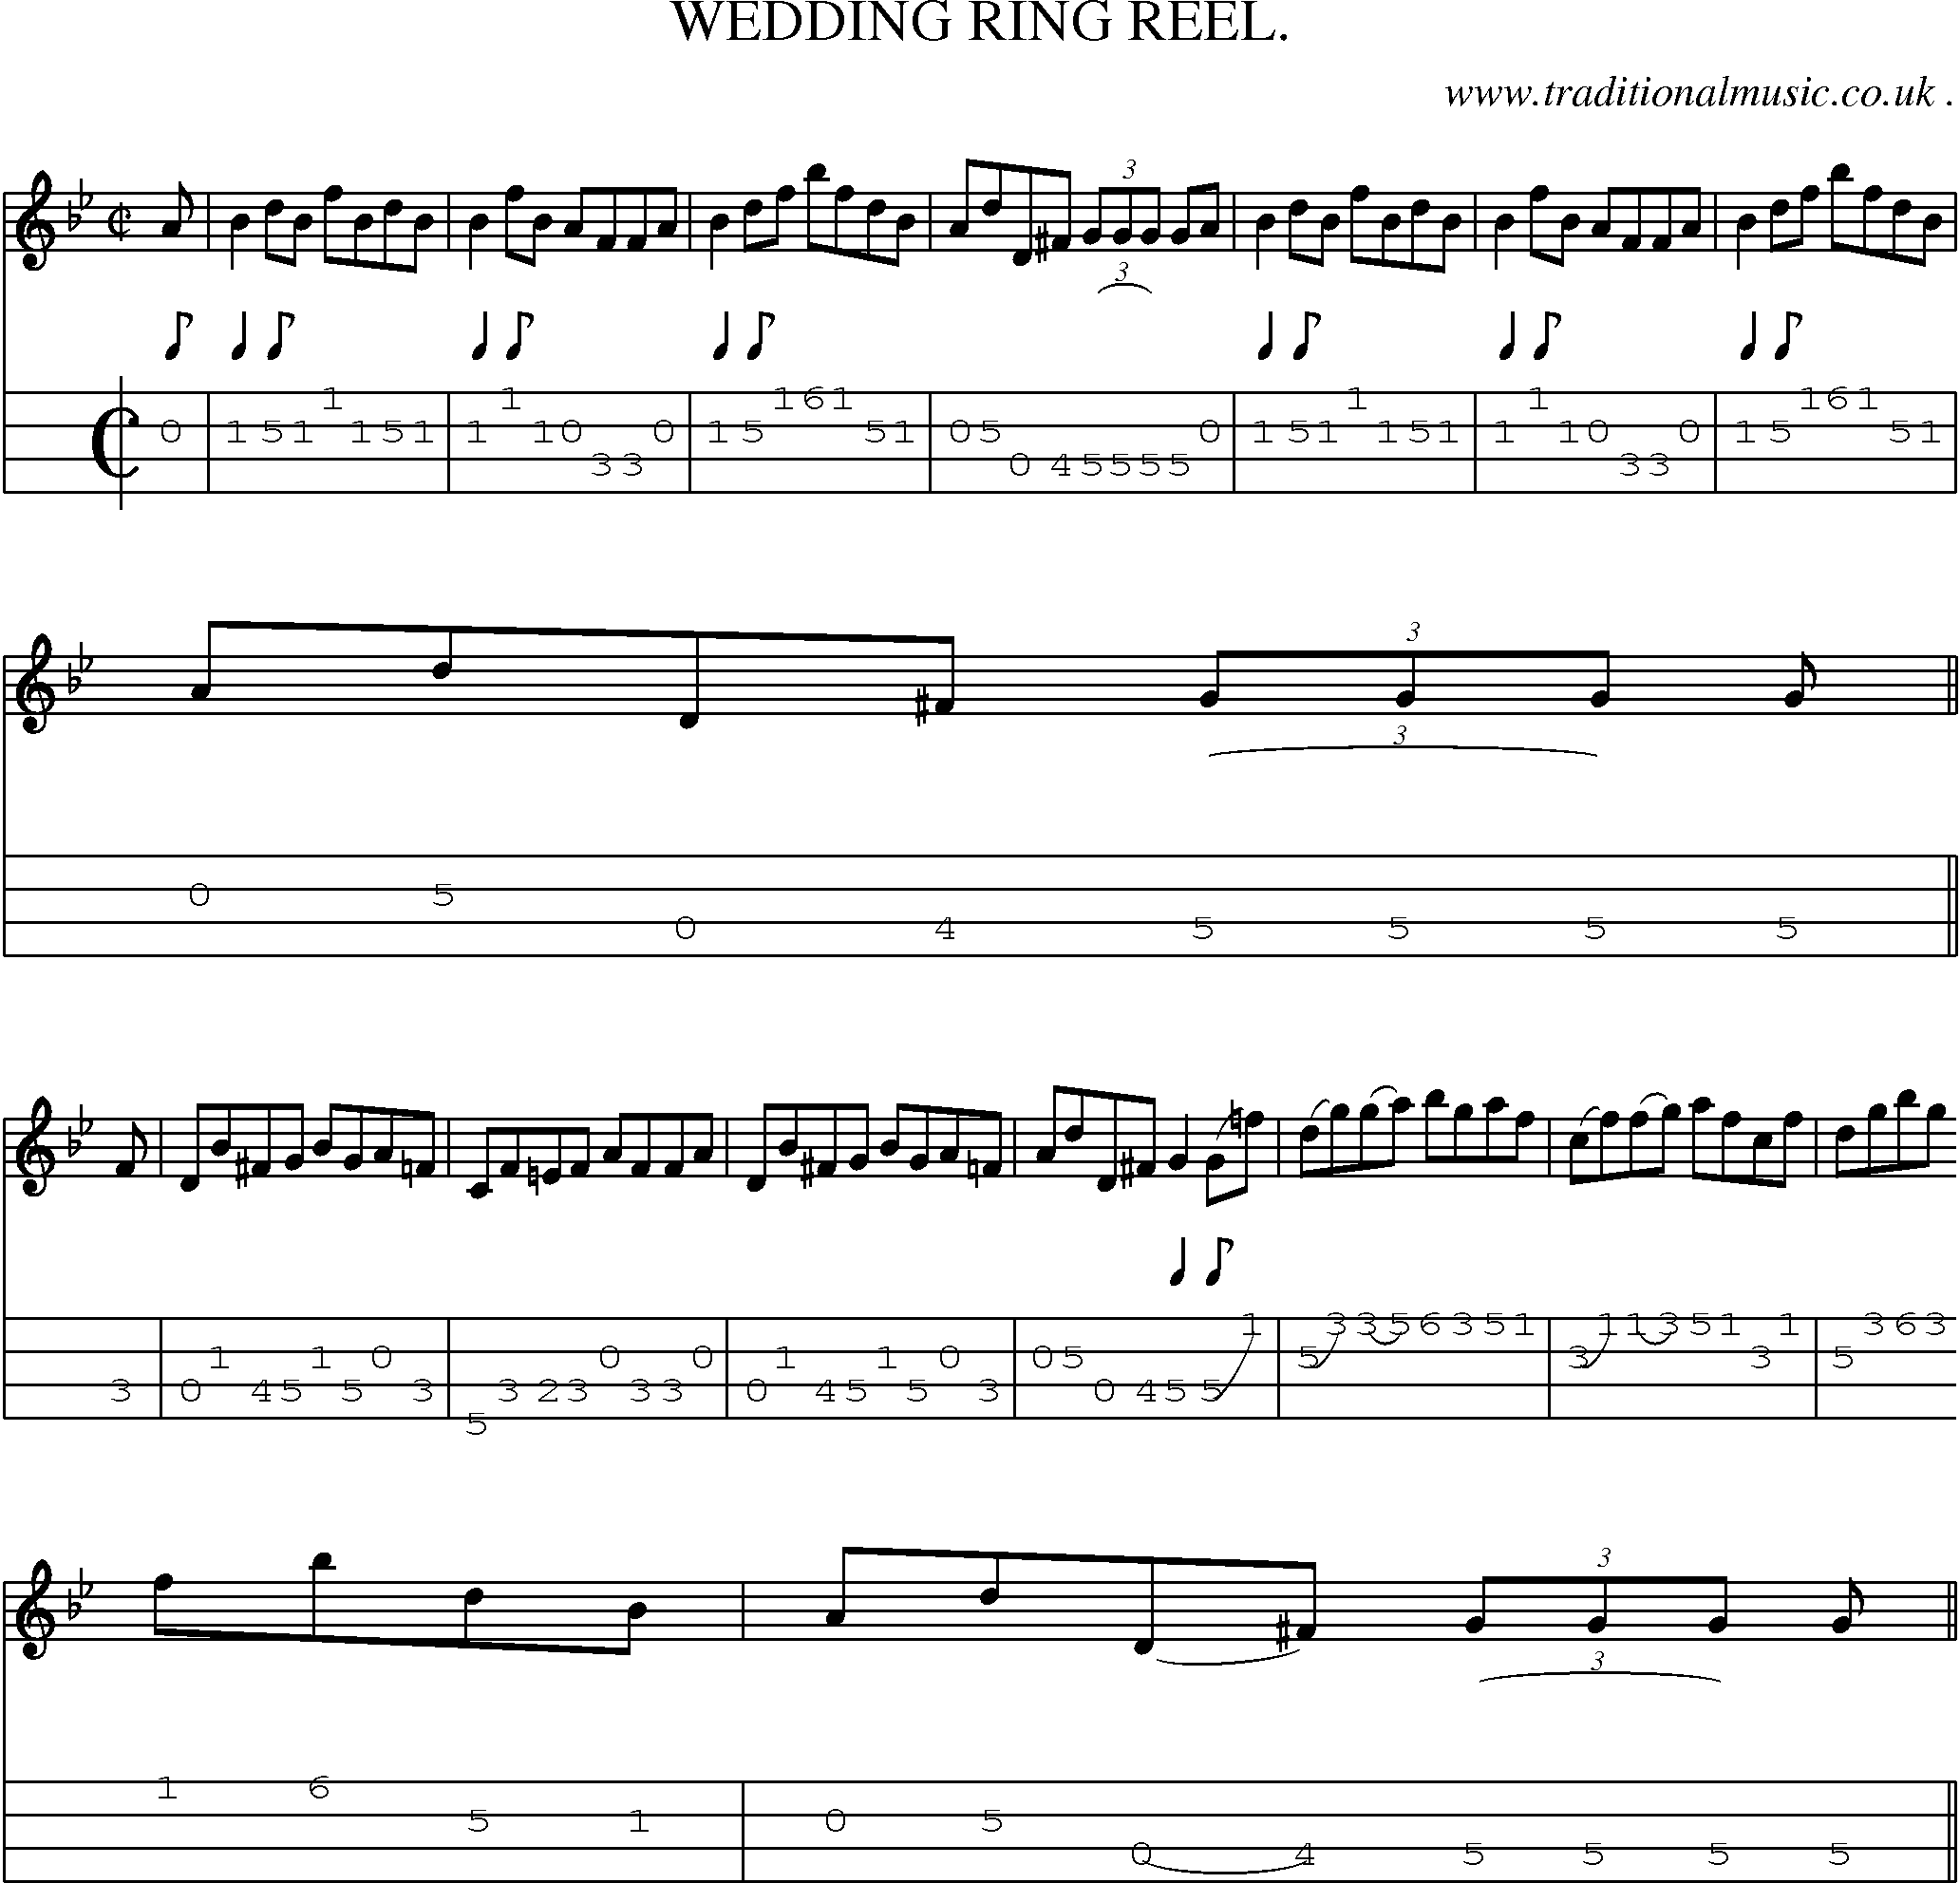 Sheet Music And Mandolin Tabs For Wedding Ring Reel